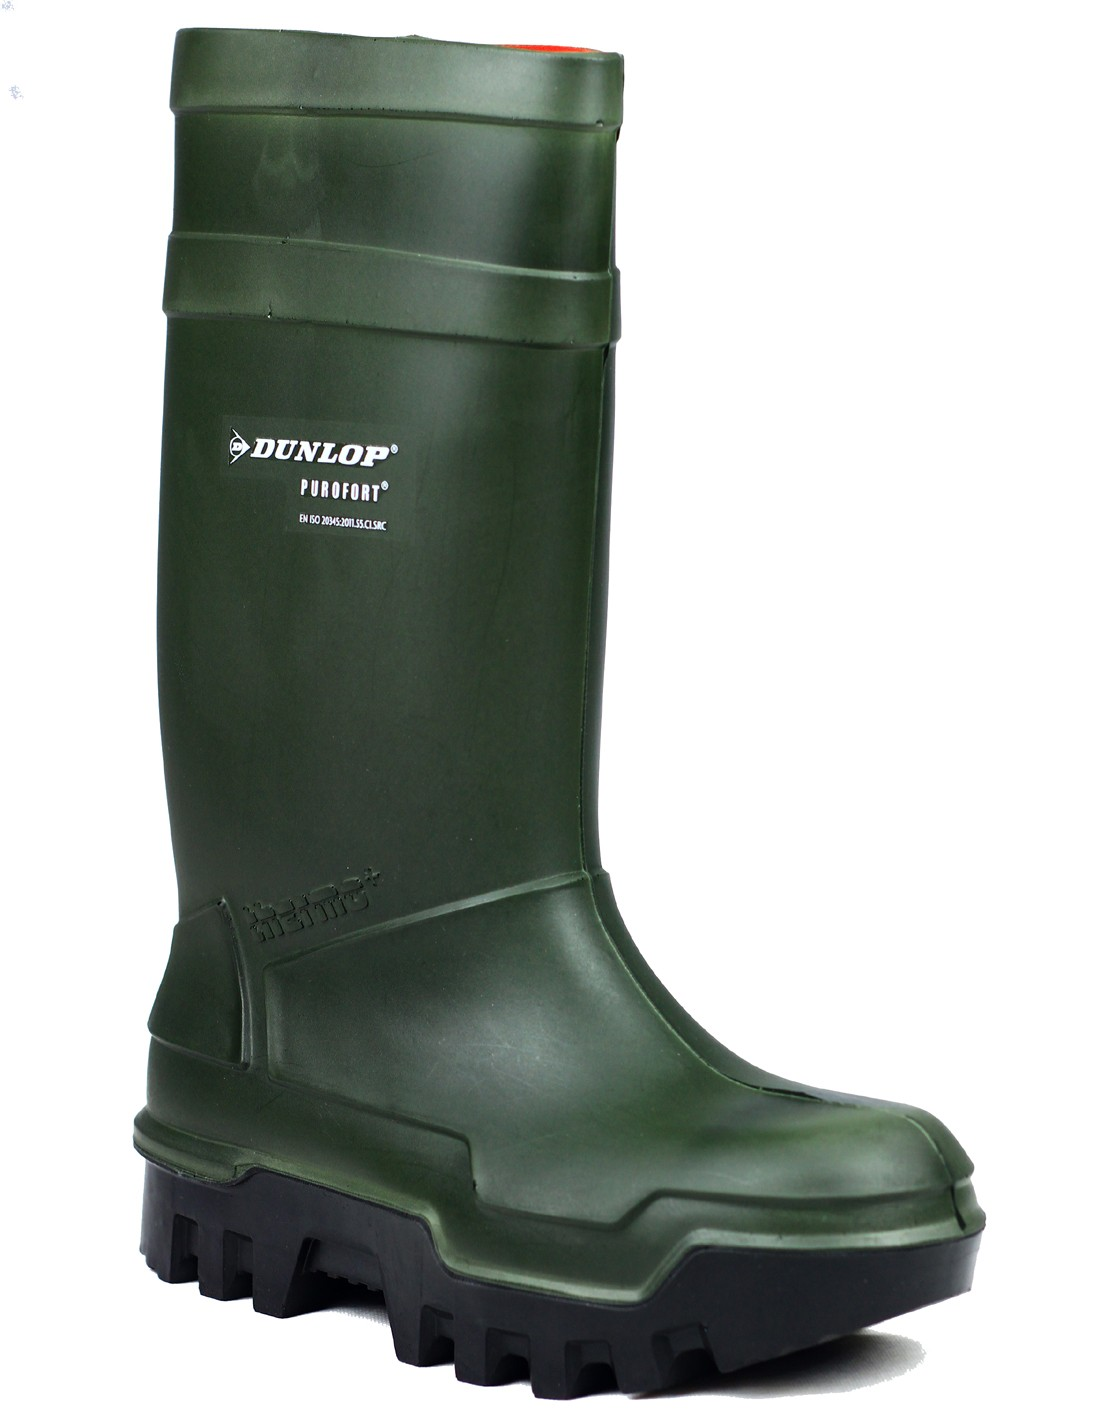 56af965bfe5 Dunlop Purofort Thermo Plus C662933 Green Full Safety Wellington ...